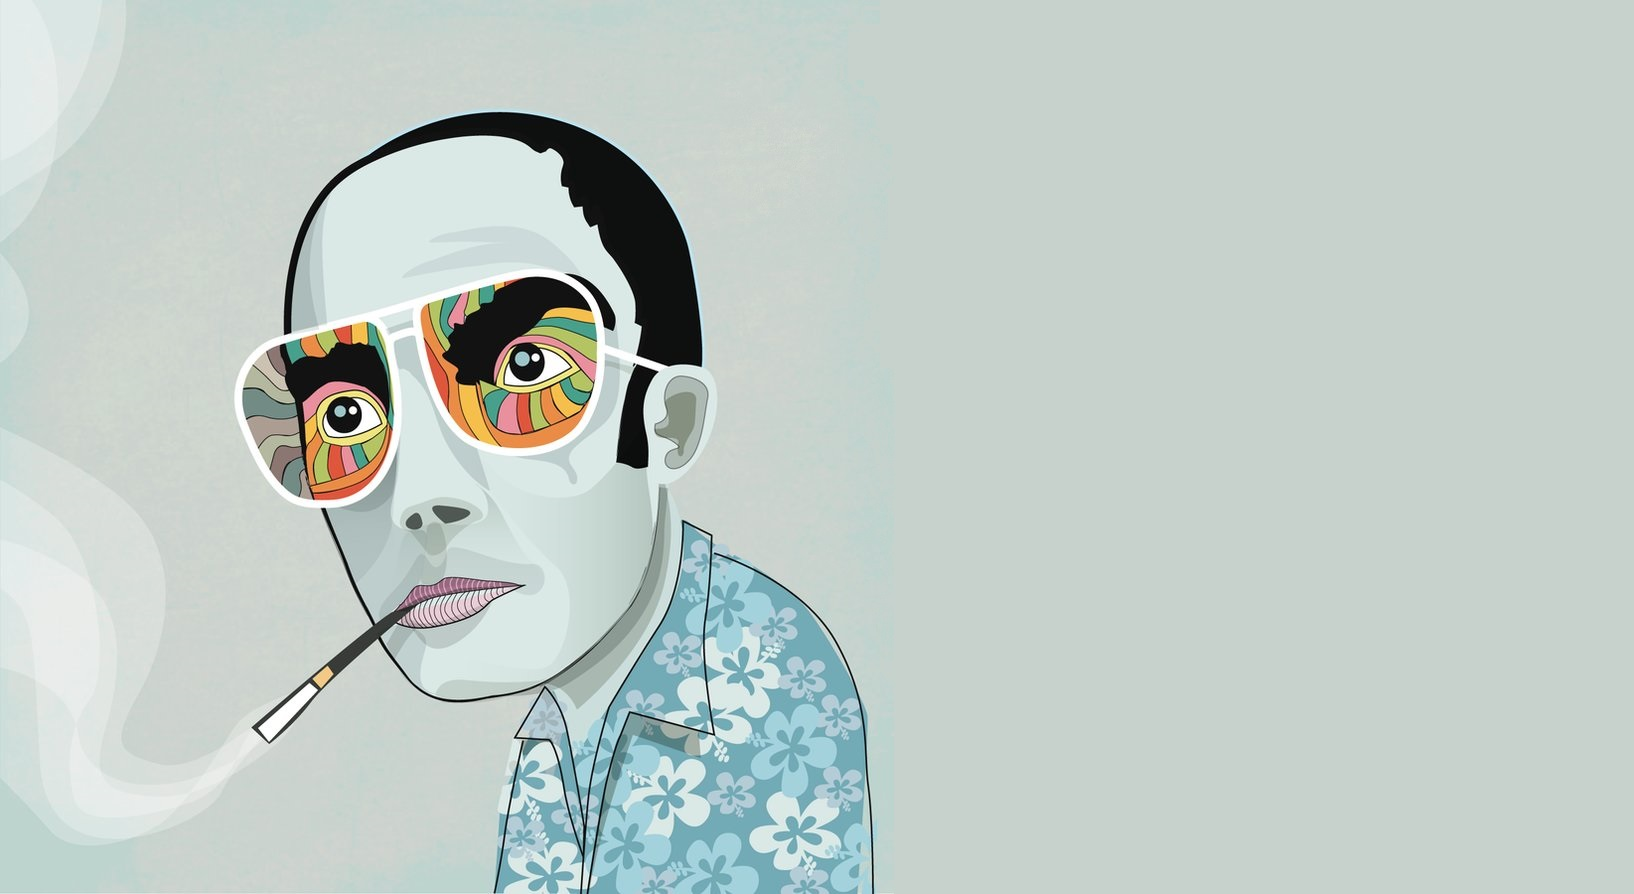 on finding your purpose an extraordinary letter by hunter s thompson